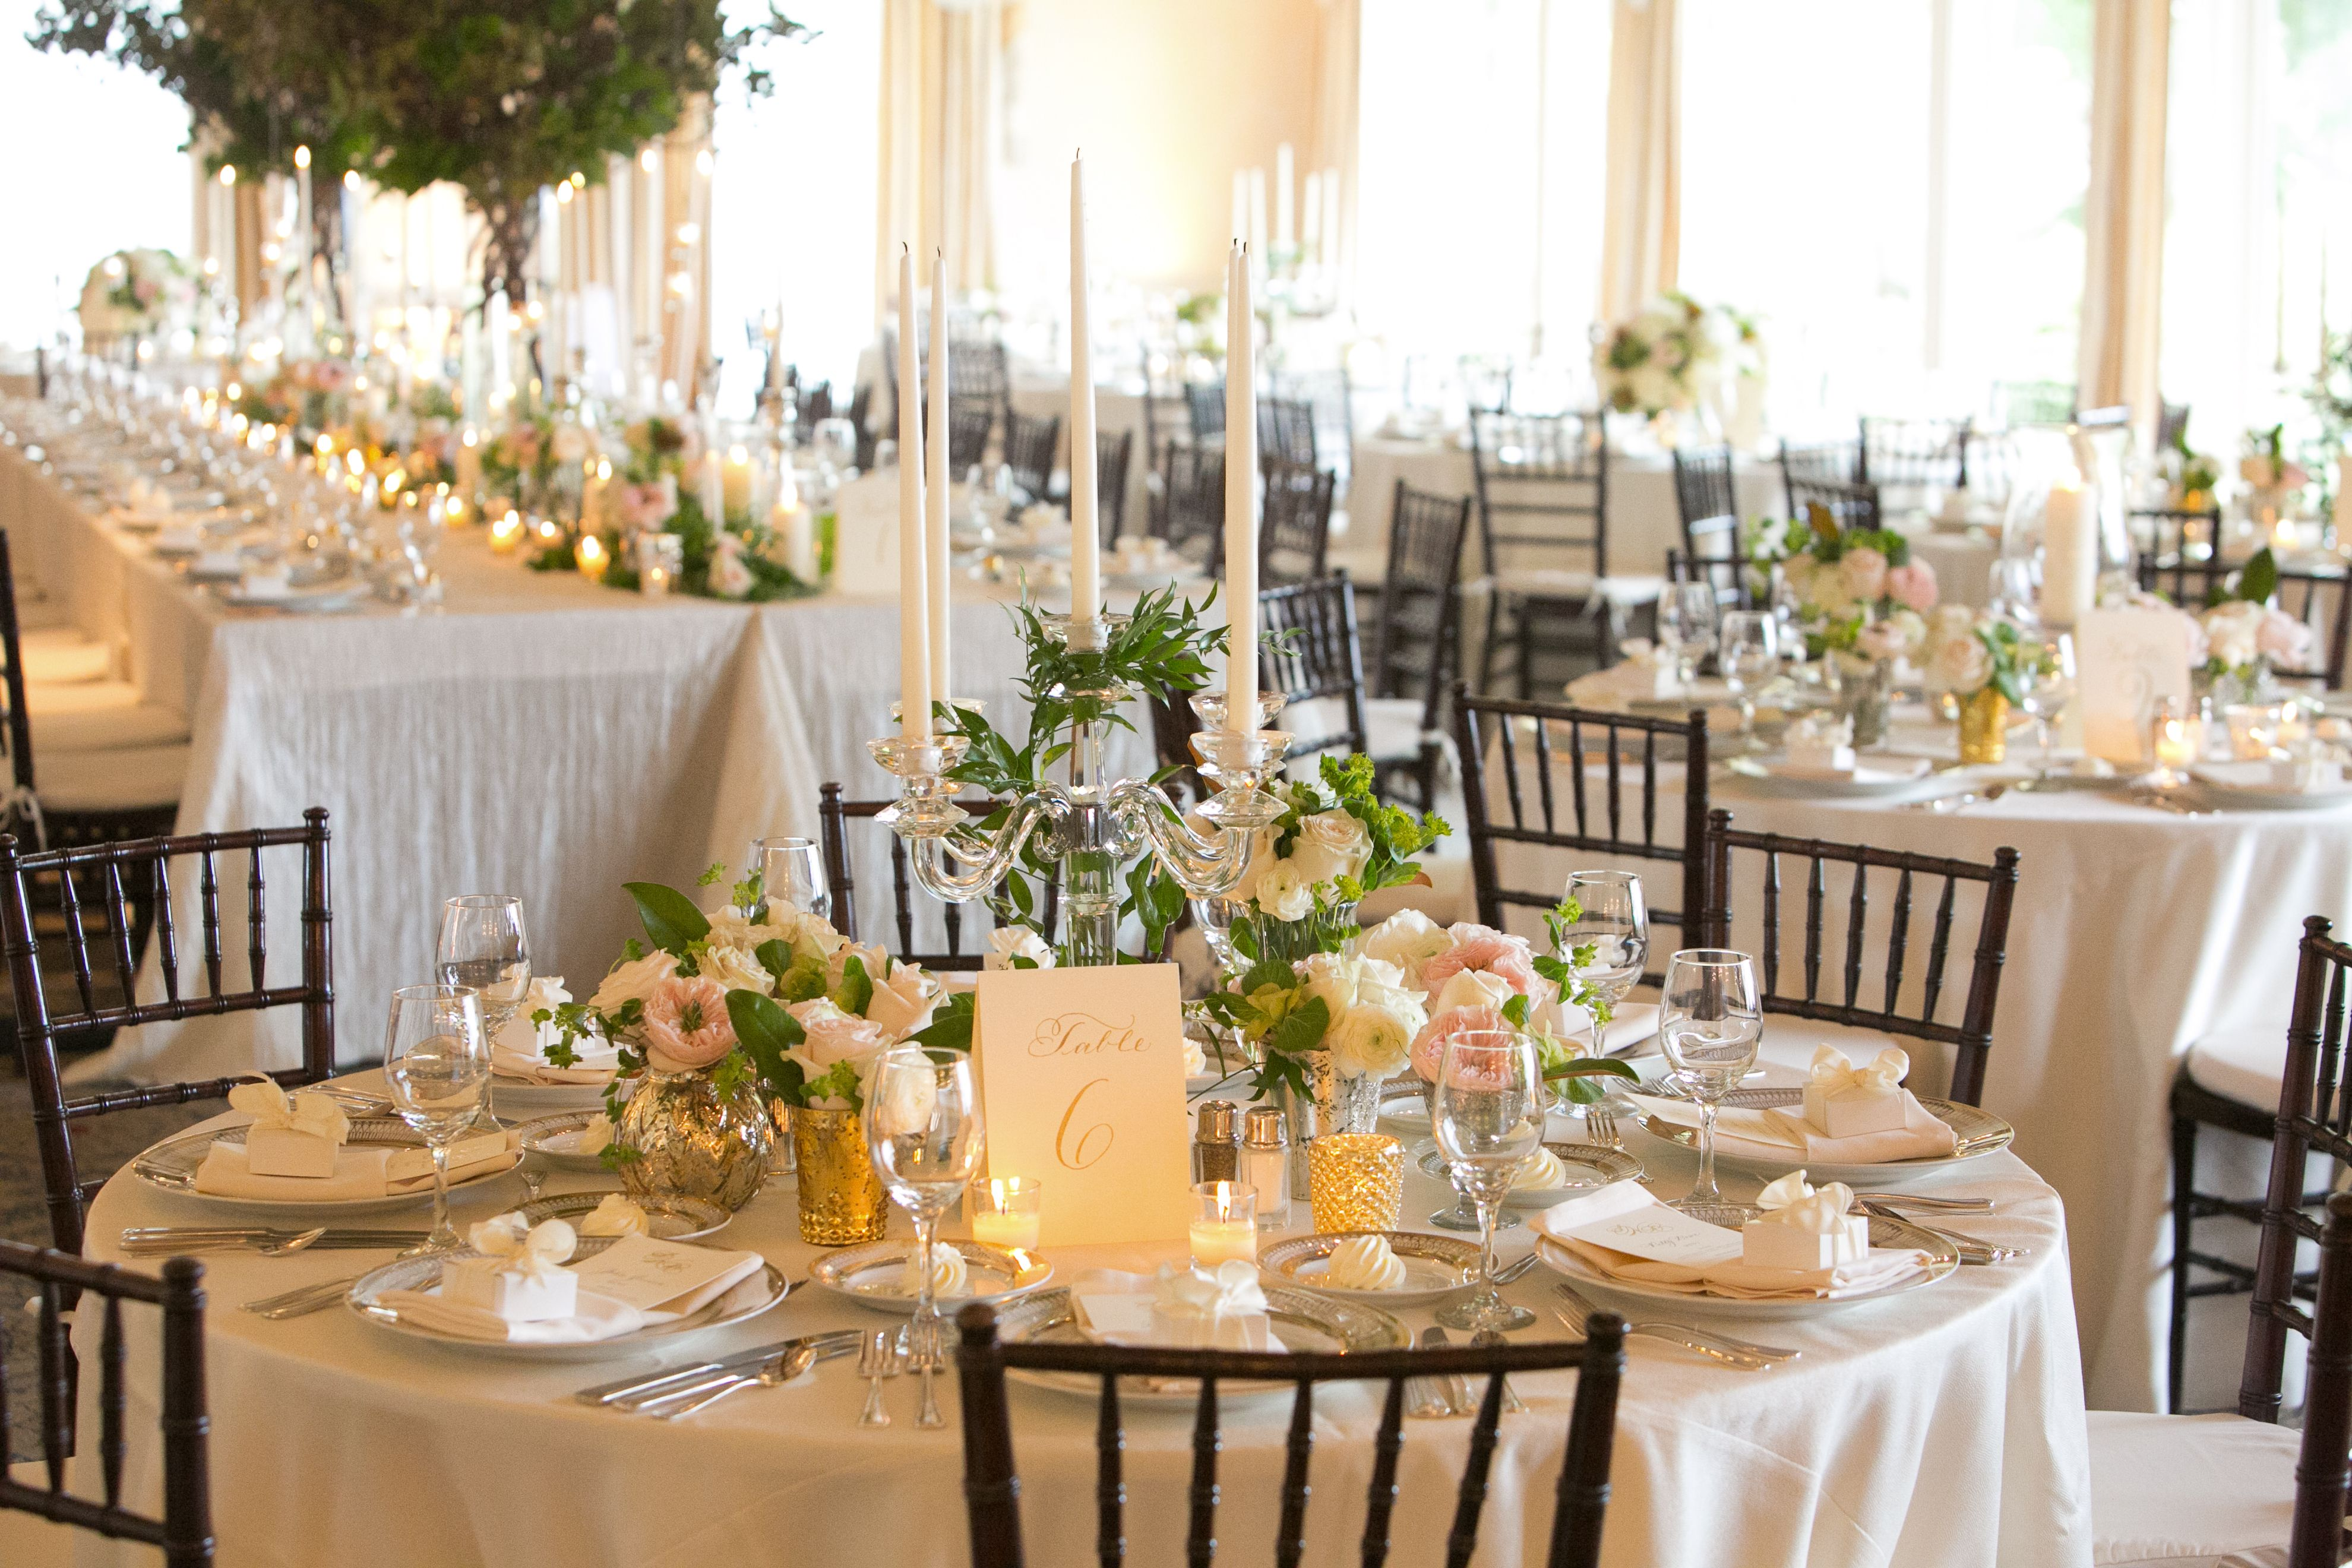 Orchard Lake Country Club Wedding I Plymouth Michigan Florist Www Jenhousedesign Biz